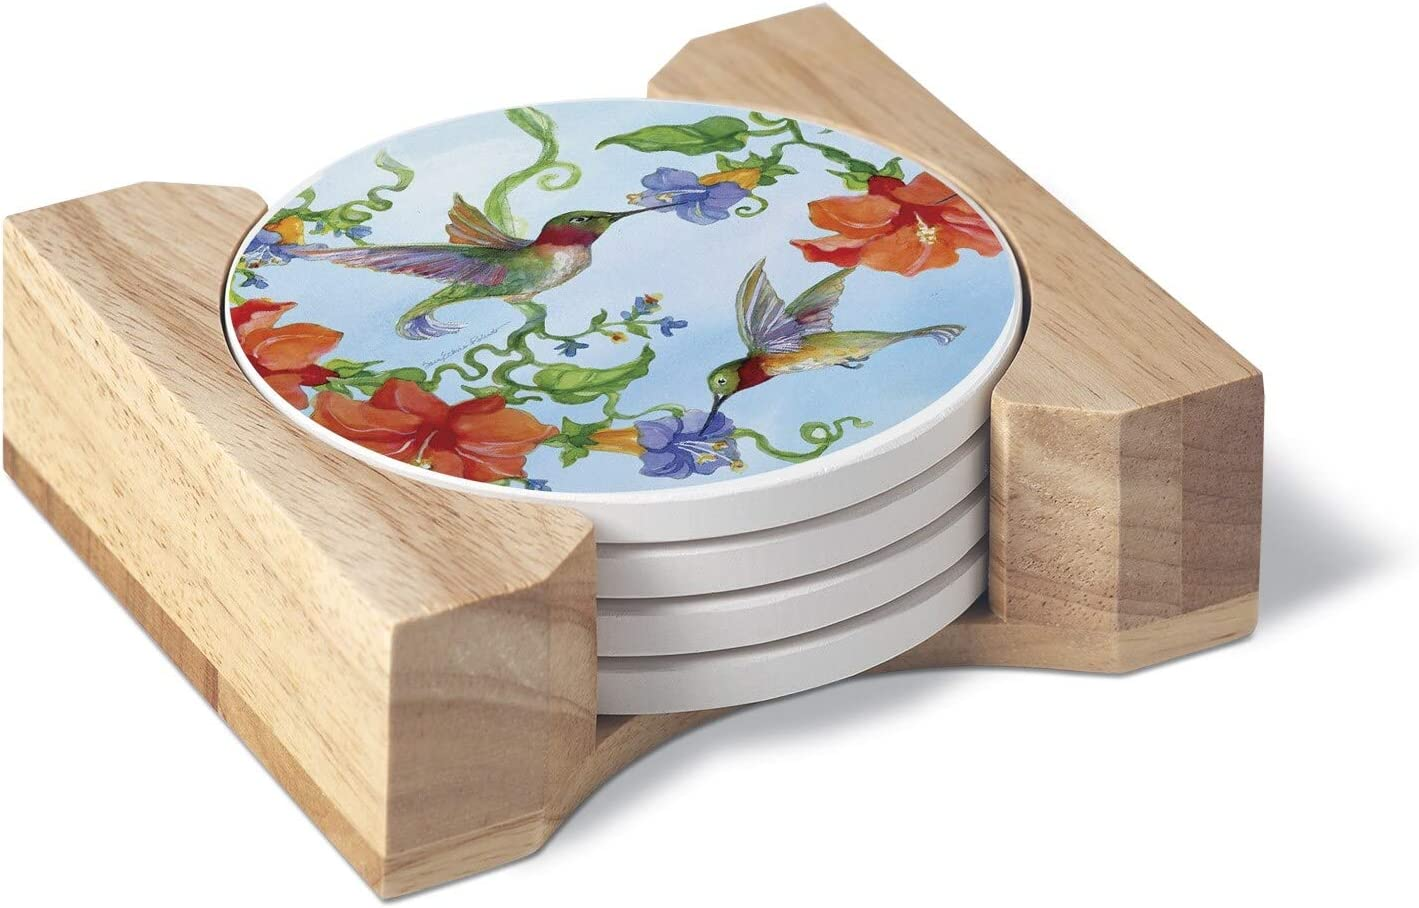 Unknown1 Round Absorbent Coasters Set specialty shop Hummingbi of with Holder Fixed price for sale 4